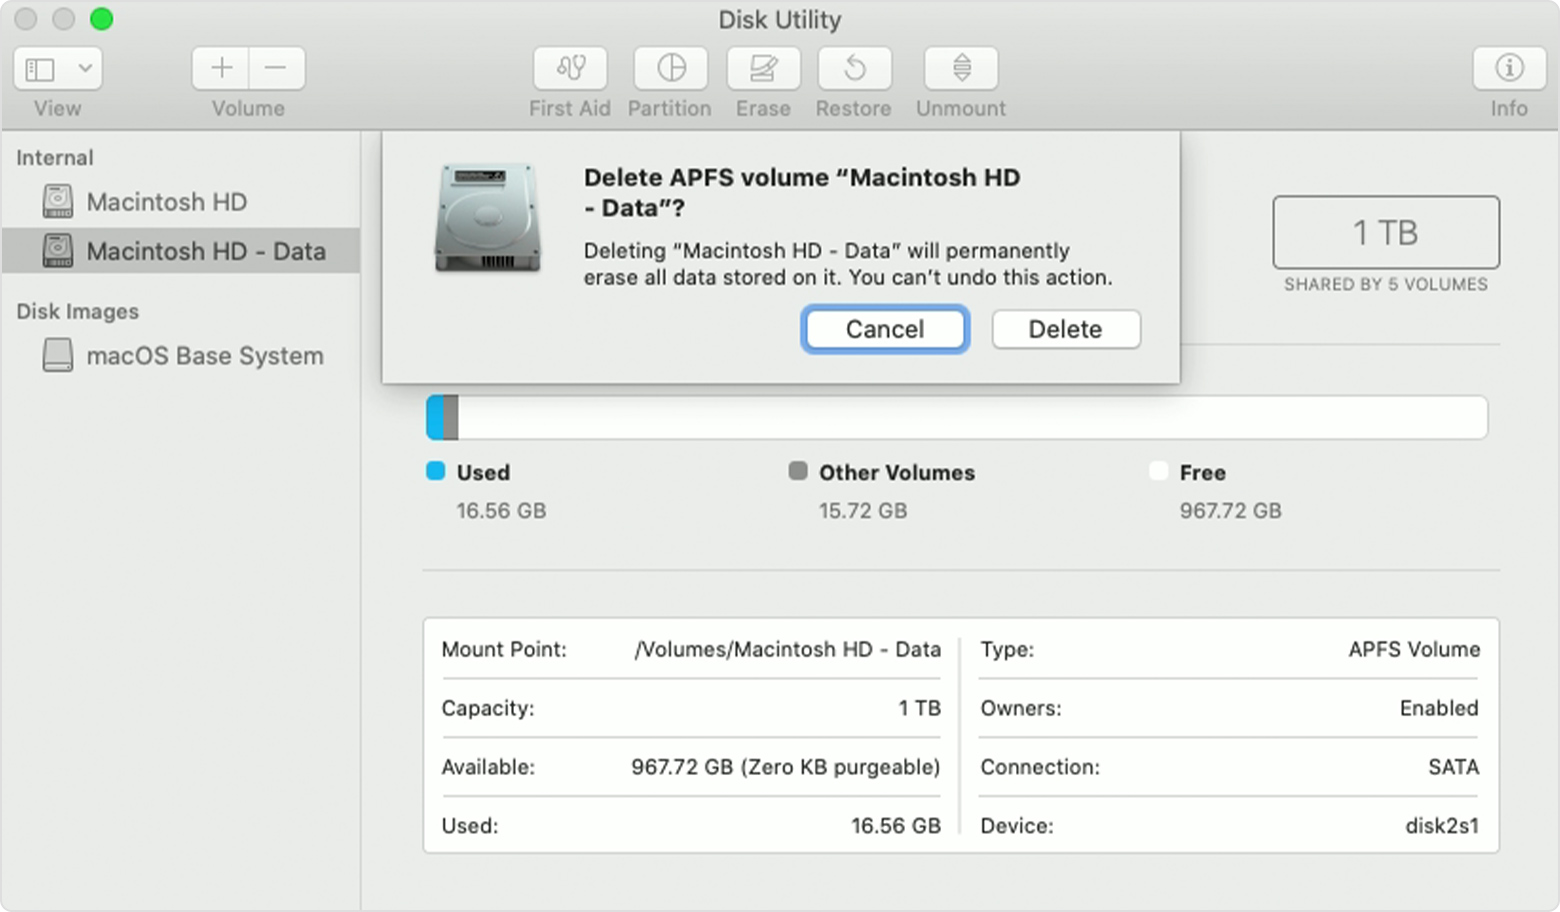 Deleting a data volume in Disk Utility